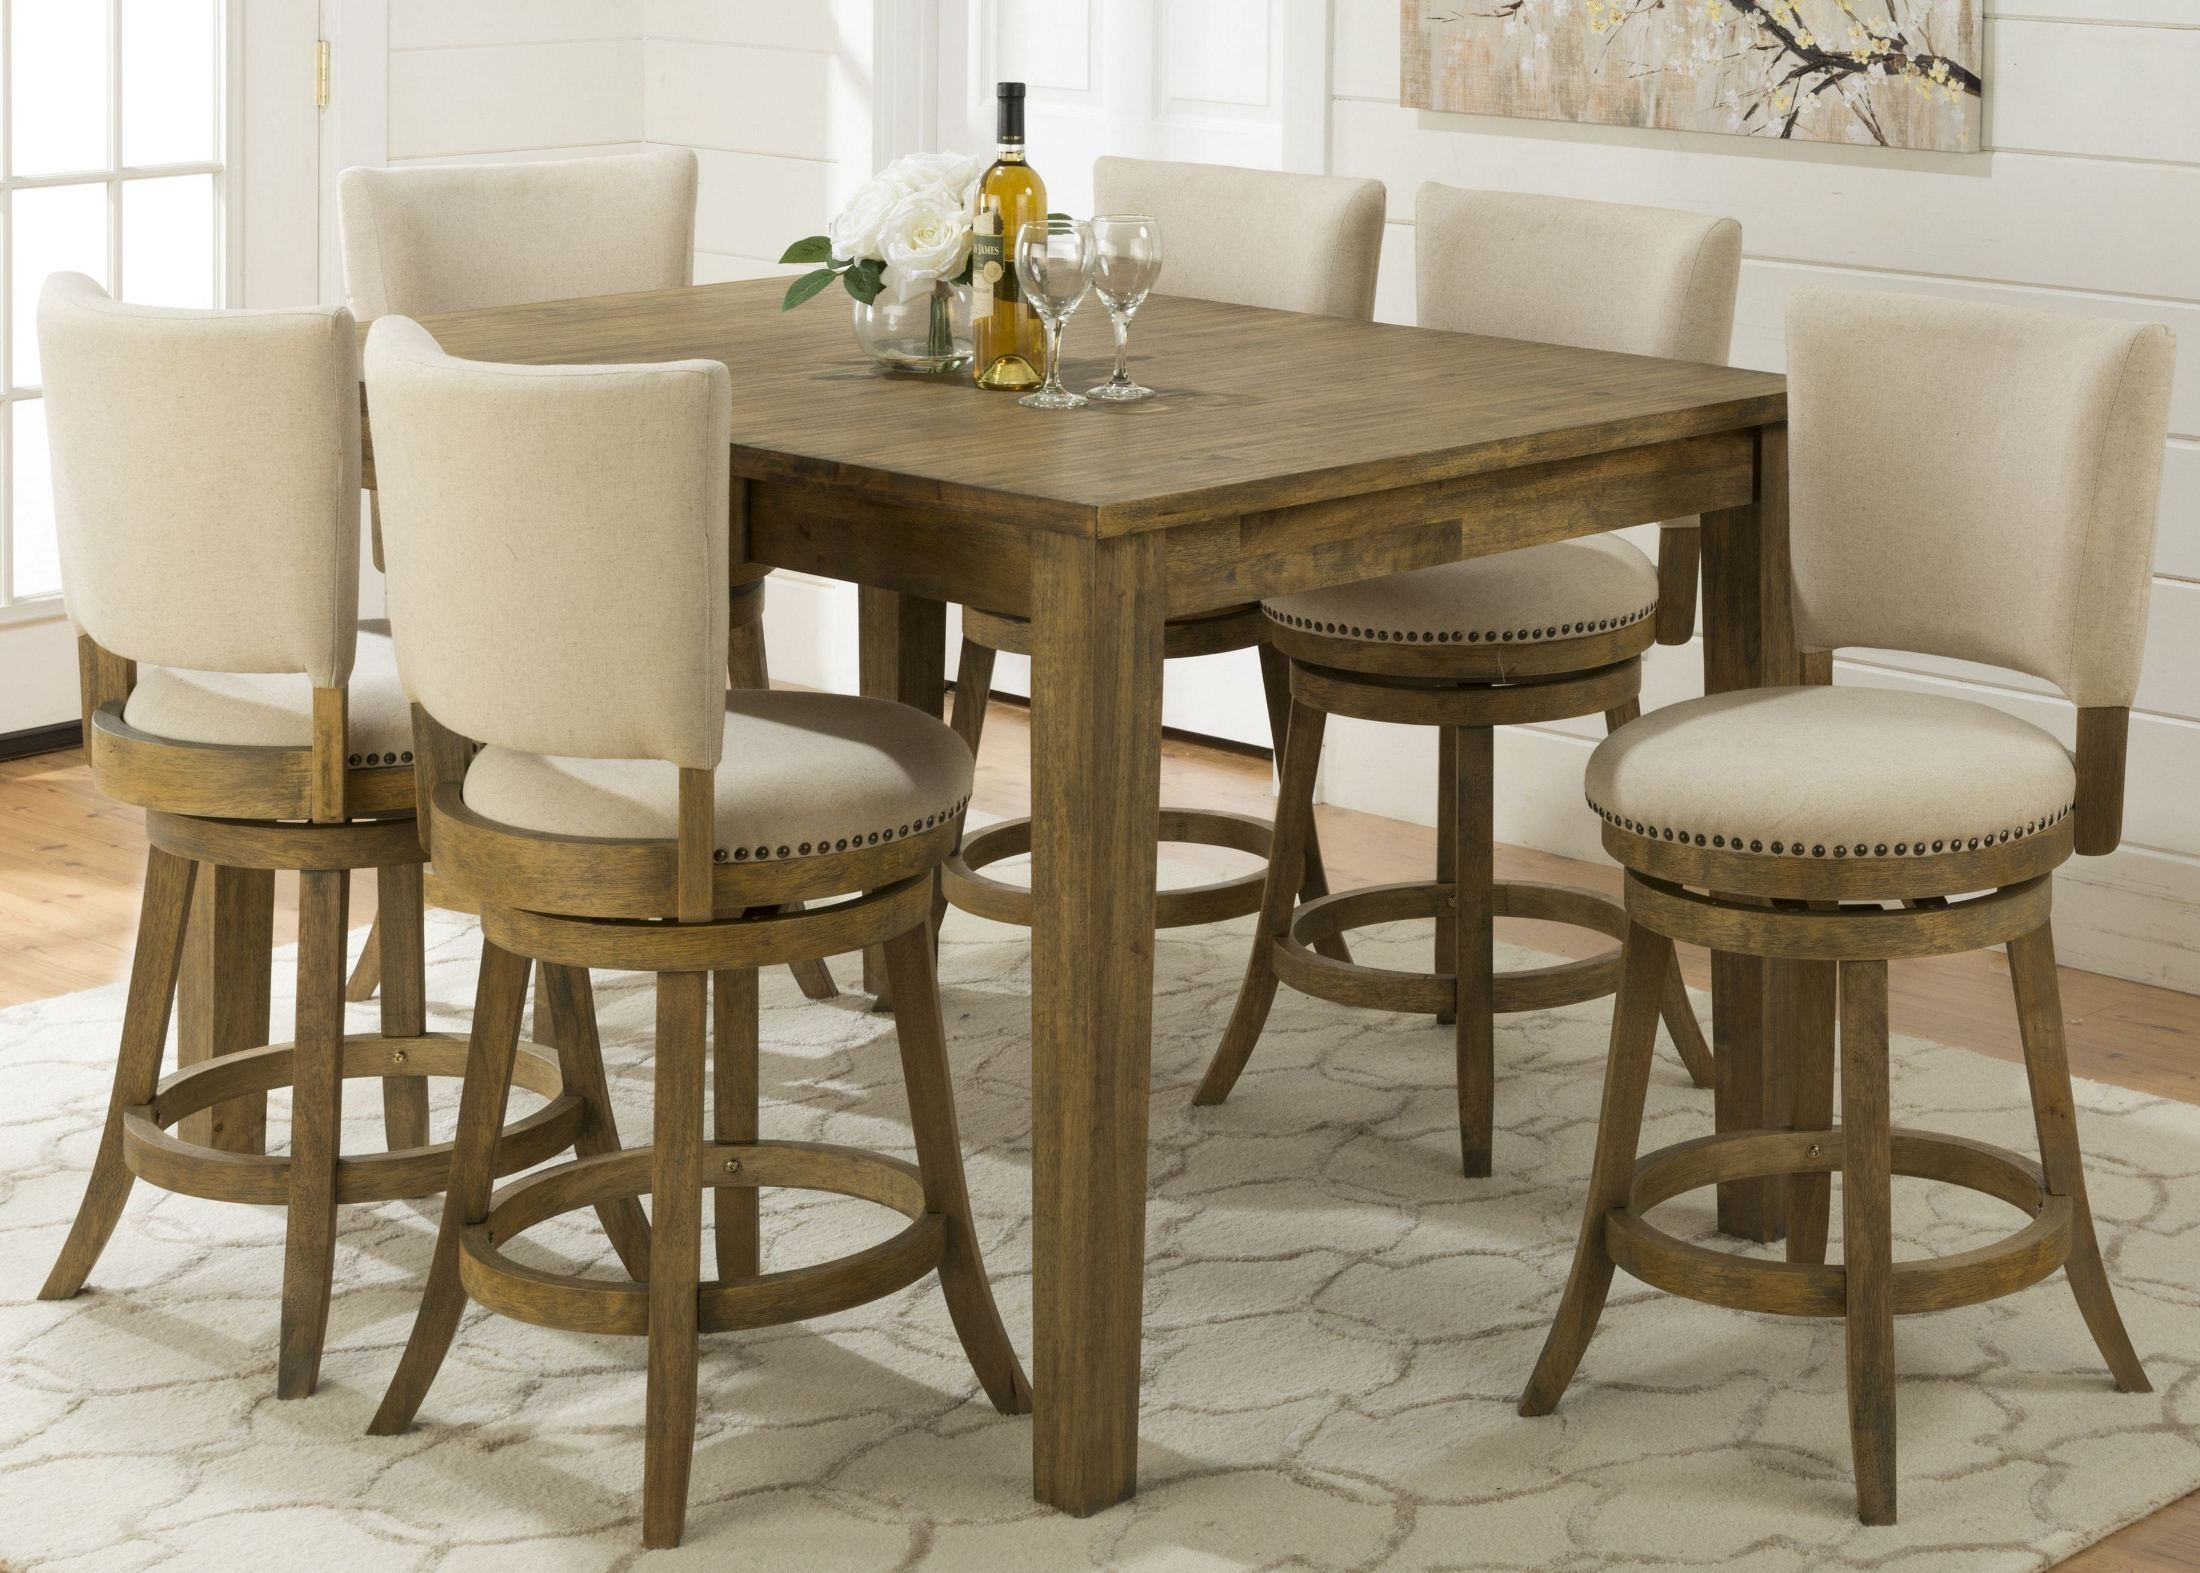 Turner'S Landing Extendable Counter Height Dining Table In Best And Newest Romriell Bar Height Trestle Dining Tables (View 7 of 15)